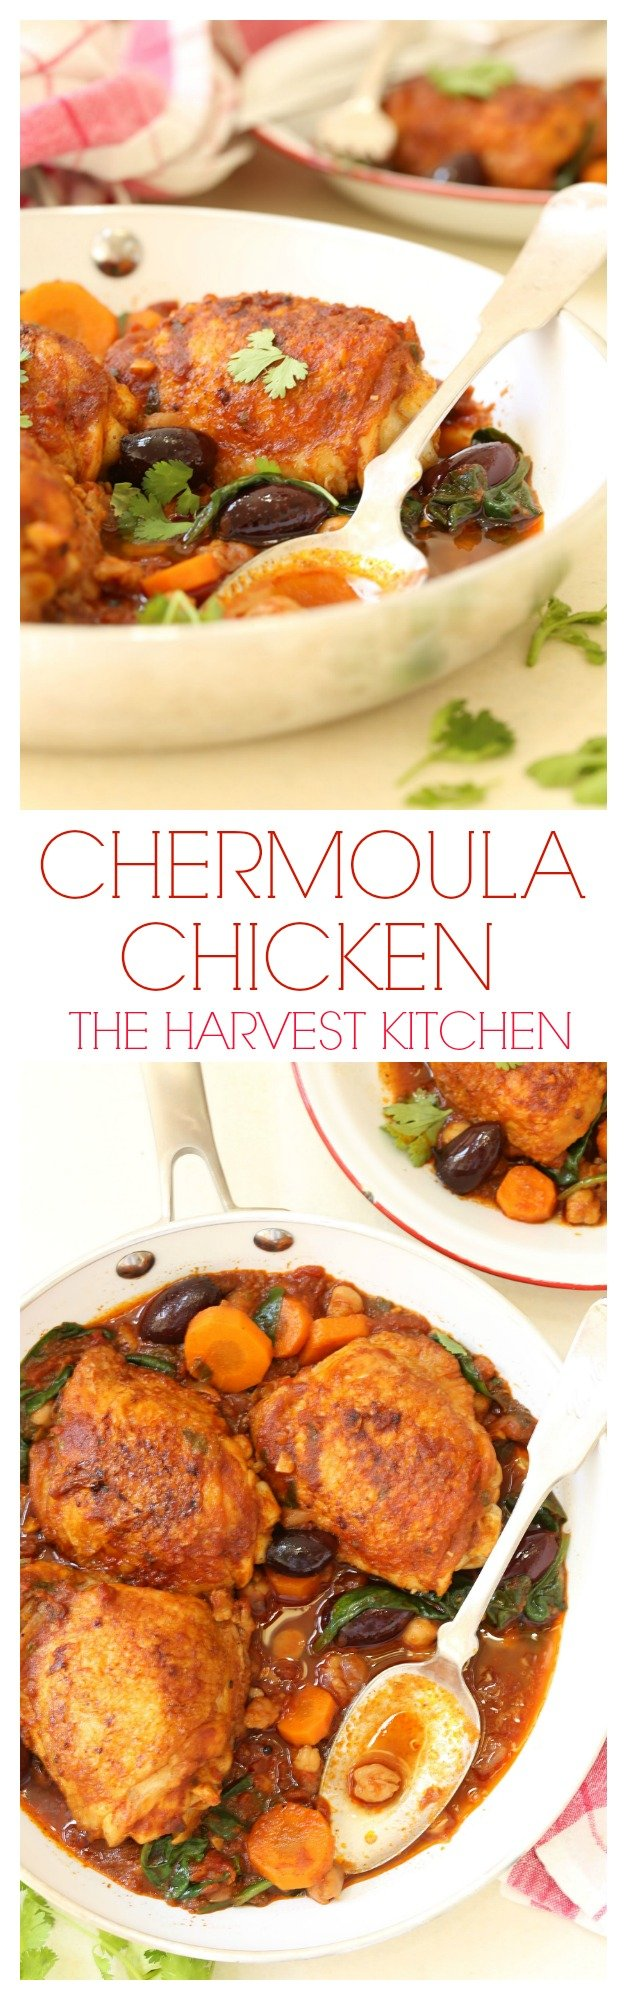 This Chicken Chermoula (also called Moroccan chicken) is a blend of chicken and vegetables simmered in an amazing exotic tasting sauce